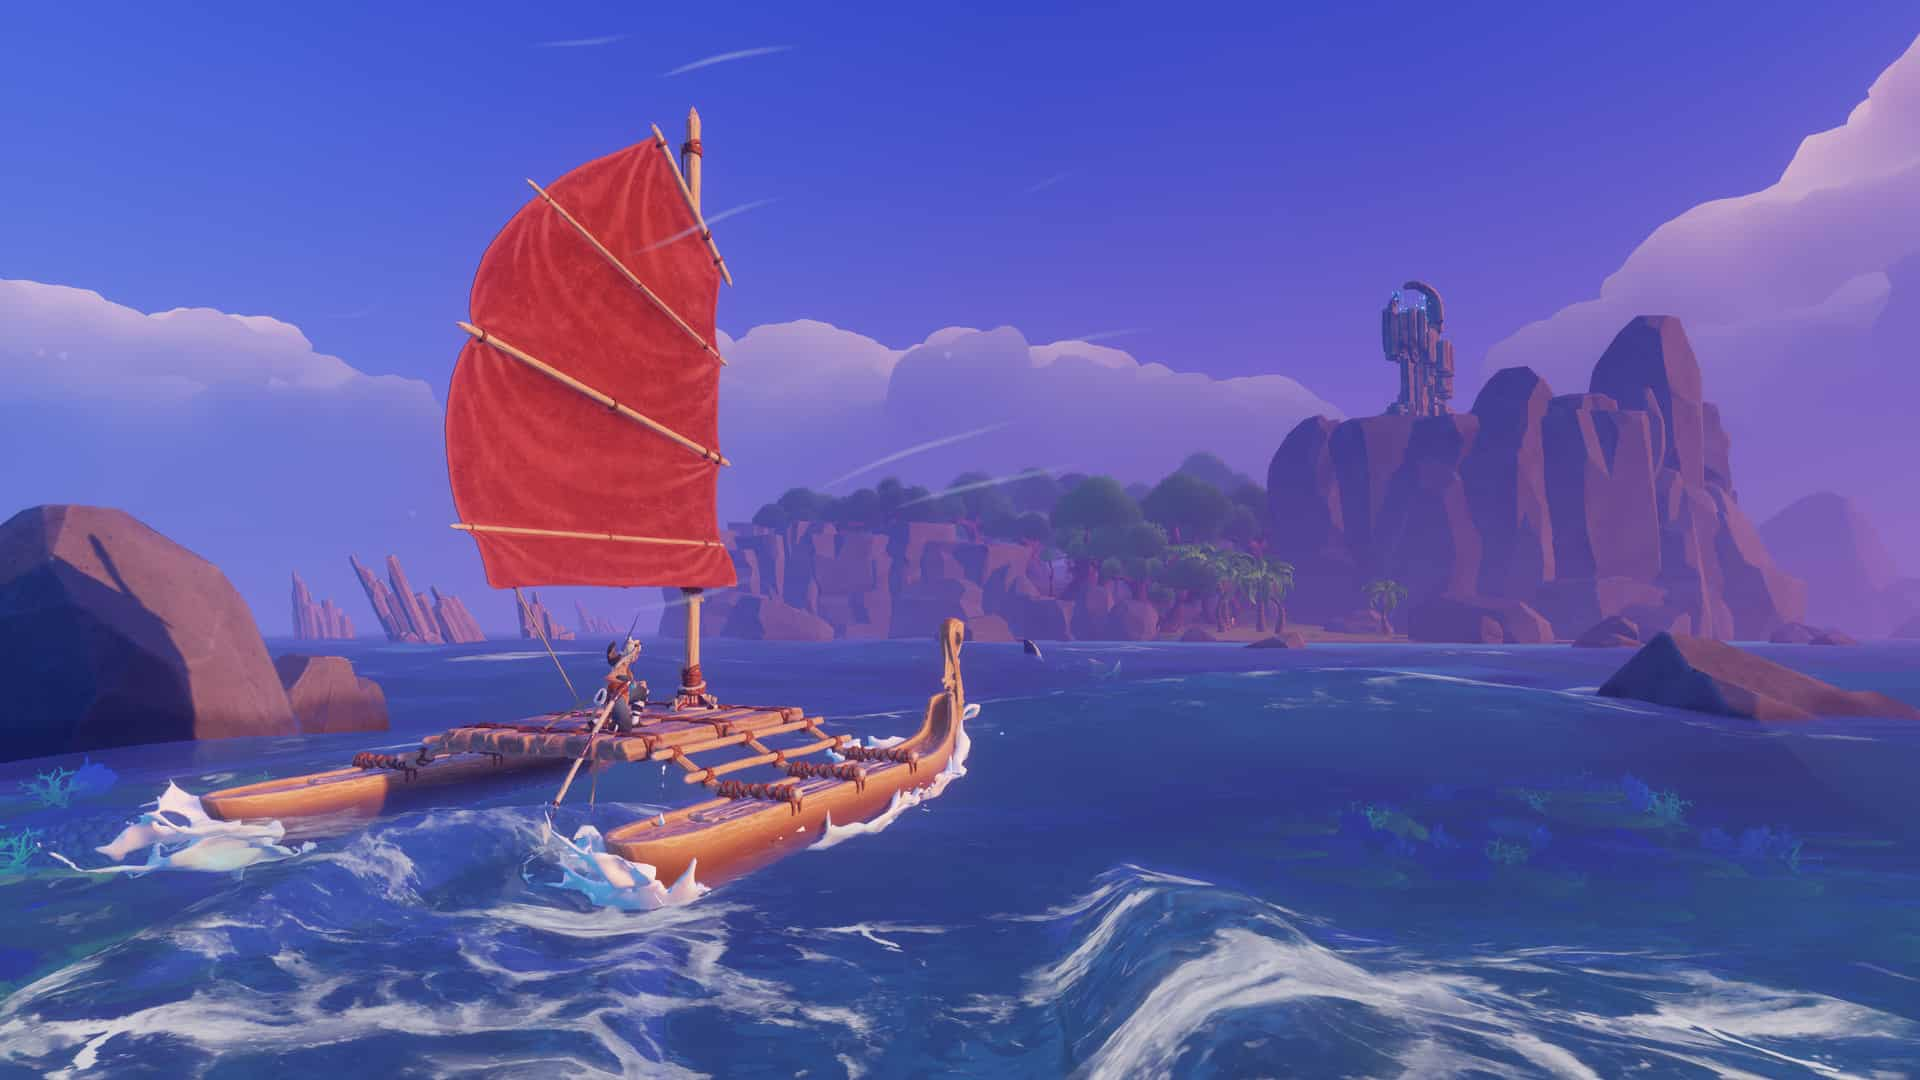 Windbound 5 Lives Studios interview Mitch Clifford co-founder animator, game like The Legend of Zelda: Breath of the Wild, Wind Waker